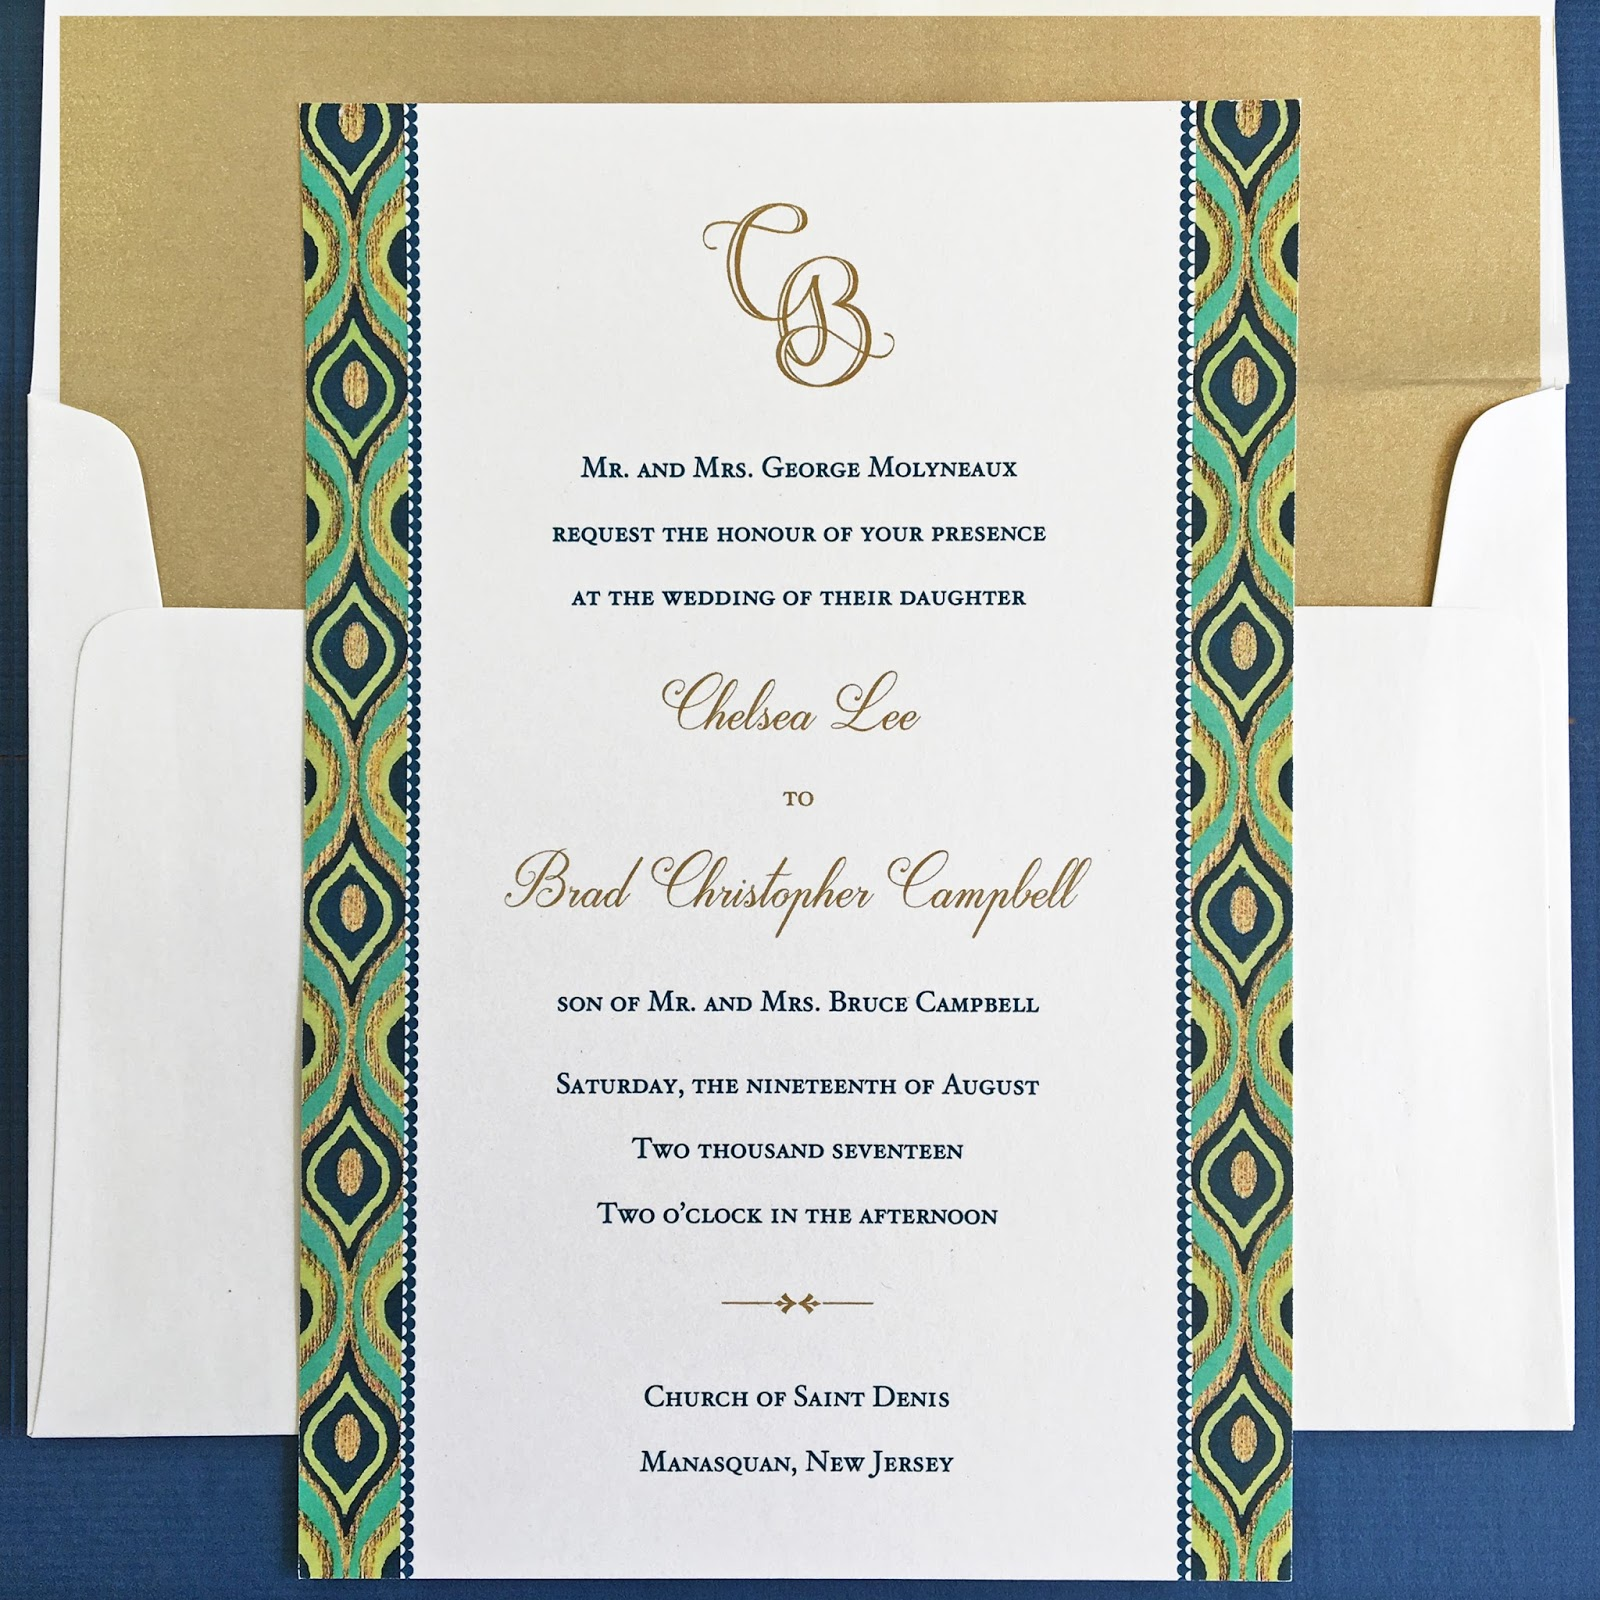 Invitations, Ink, Social Design Studio: A Bold Pattern and Marine Colors